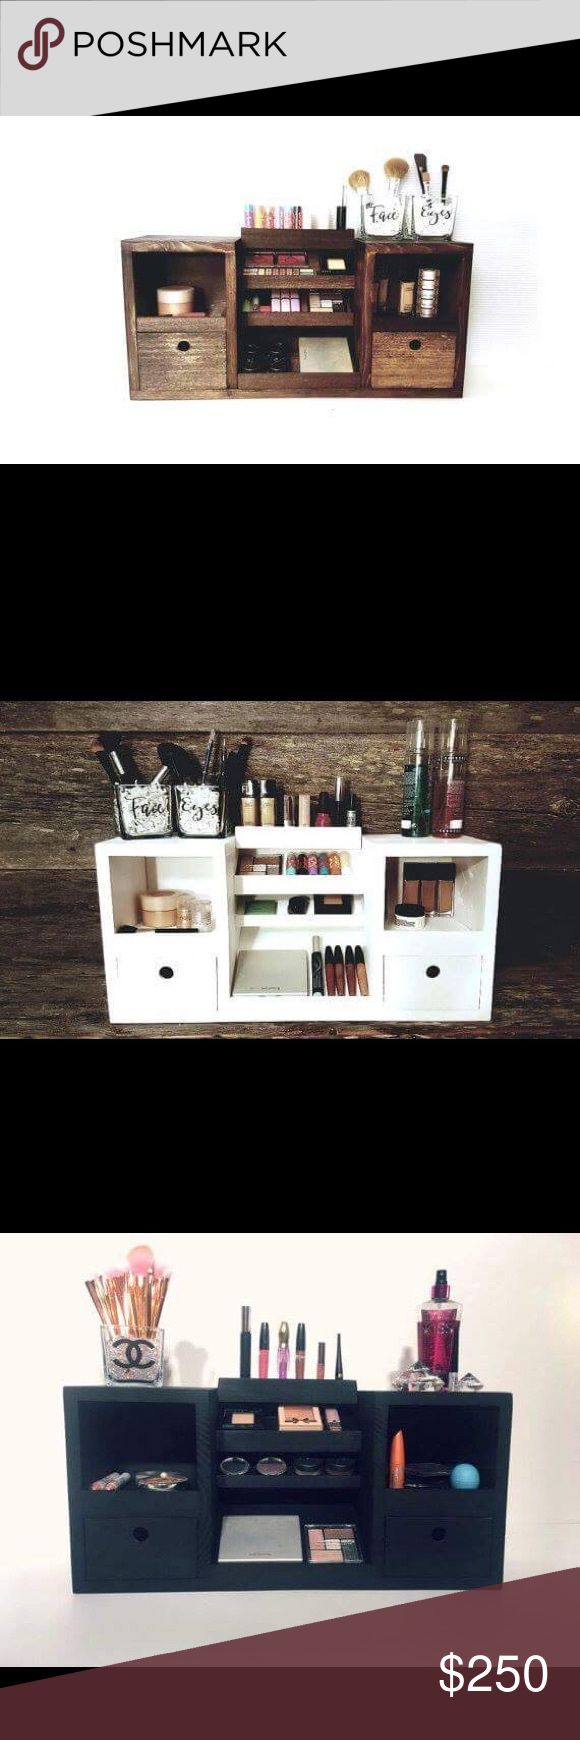 Makeup Organizer . Price Firm Large wooden makeup organizer. Can be painted in black, white, dark walnut or country grey. Makeup and props not included. highland design co Makeup Brushes & Tools